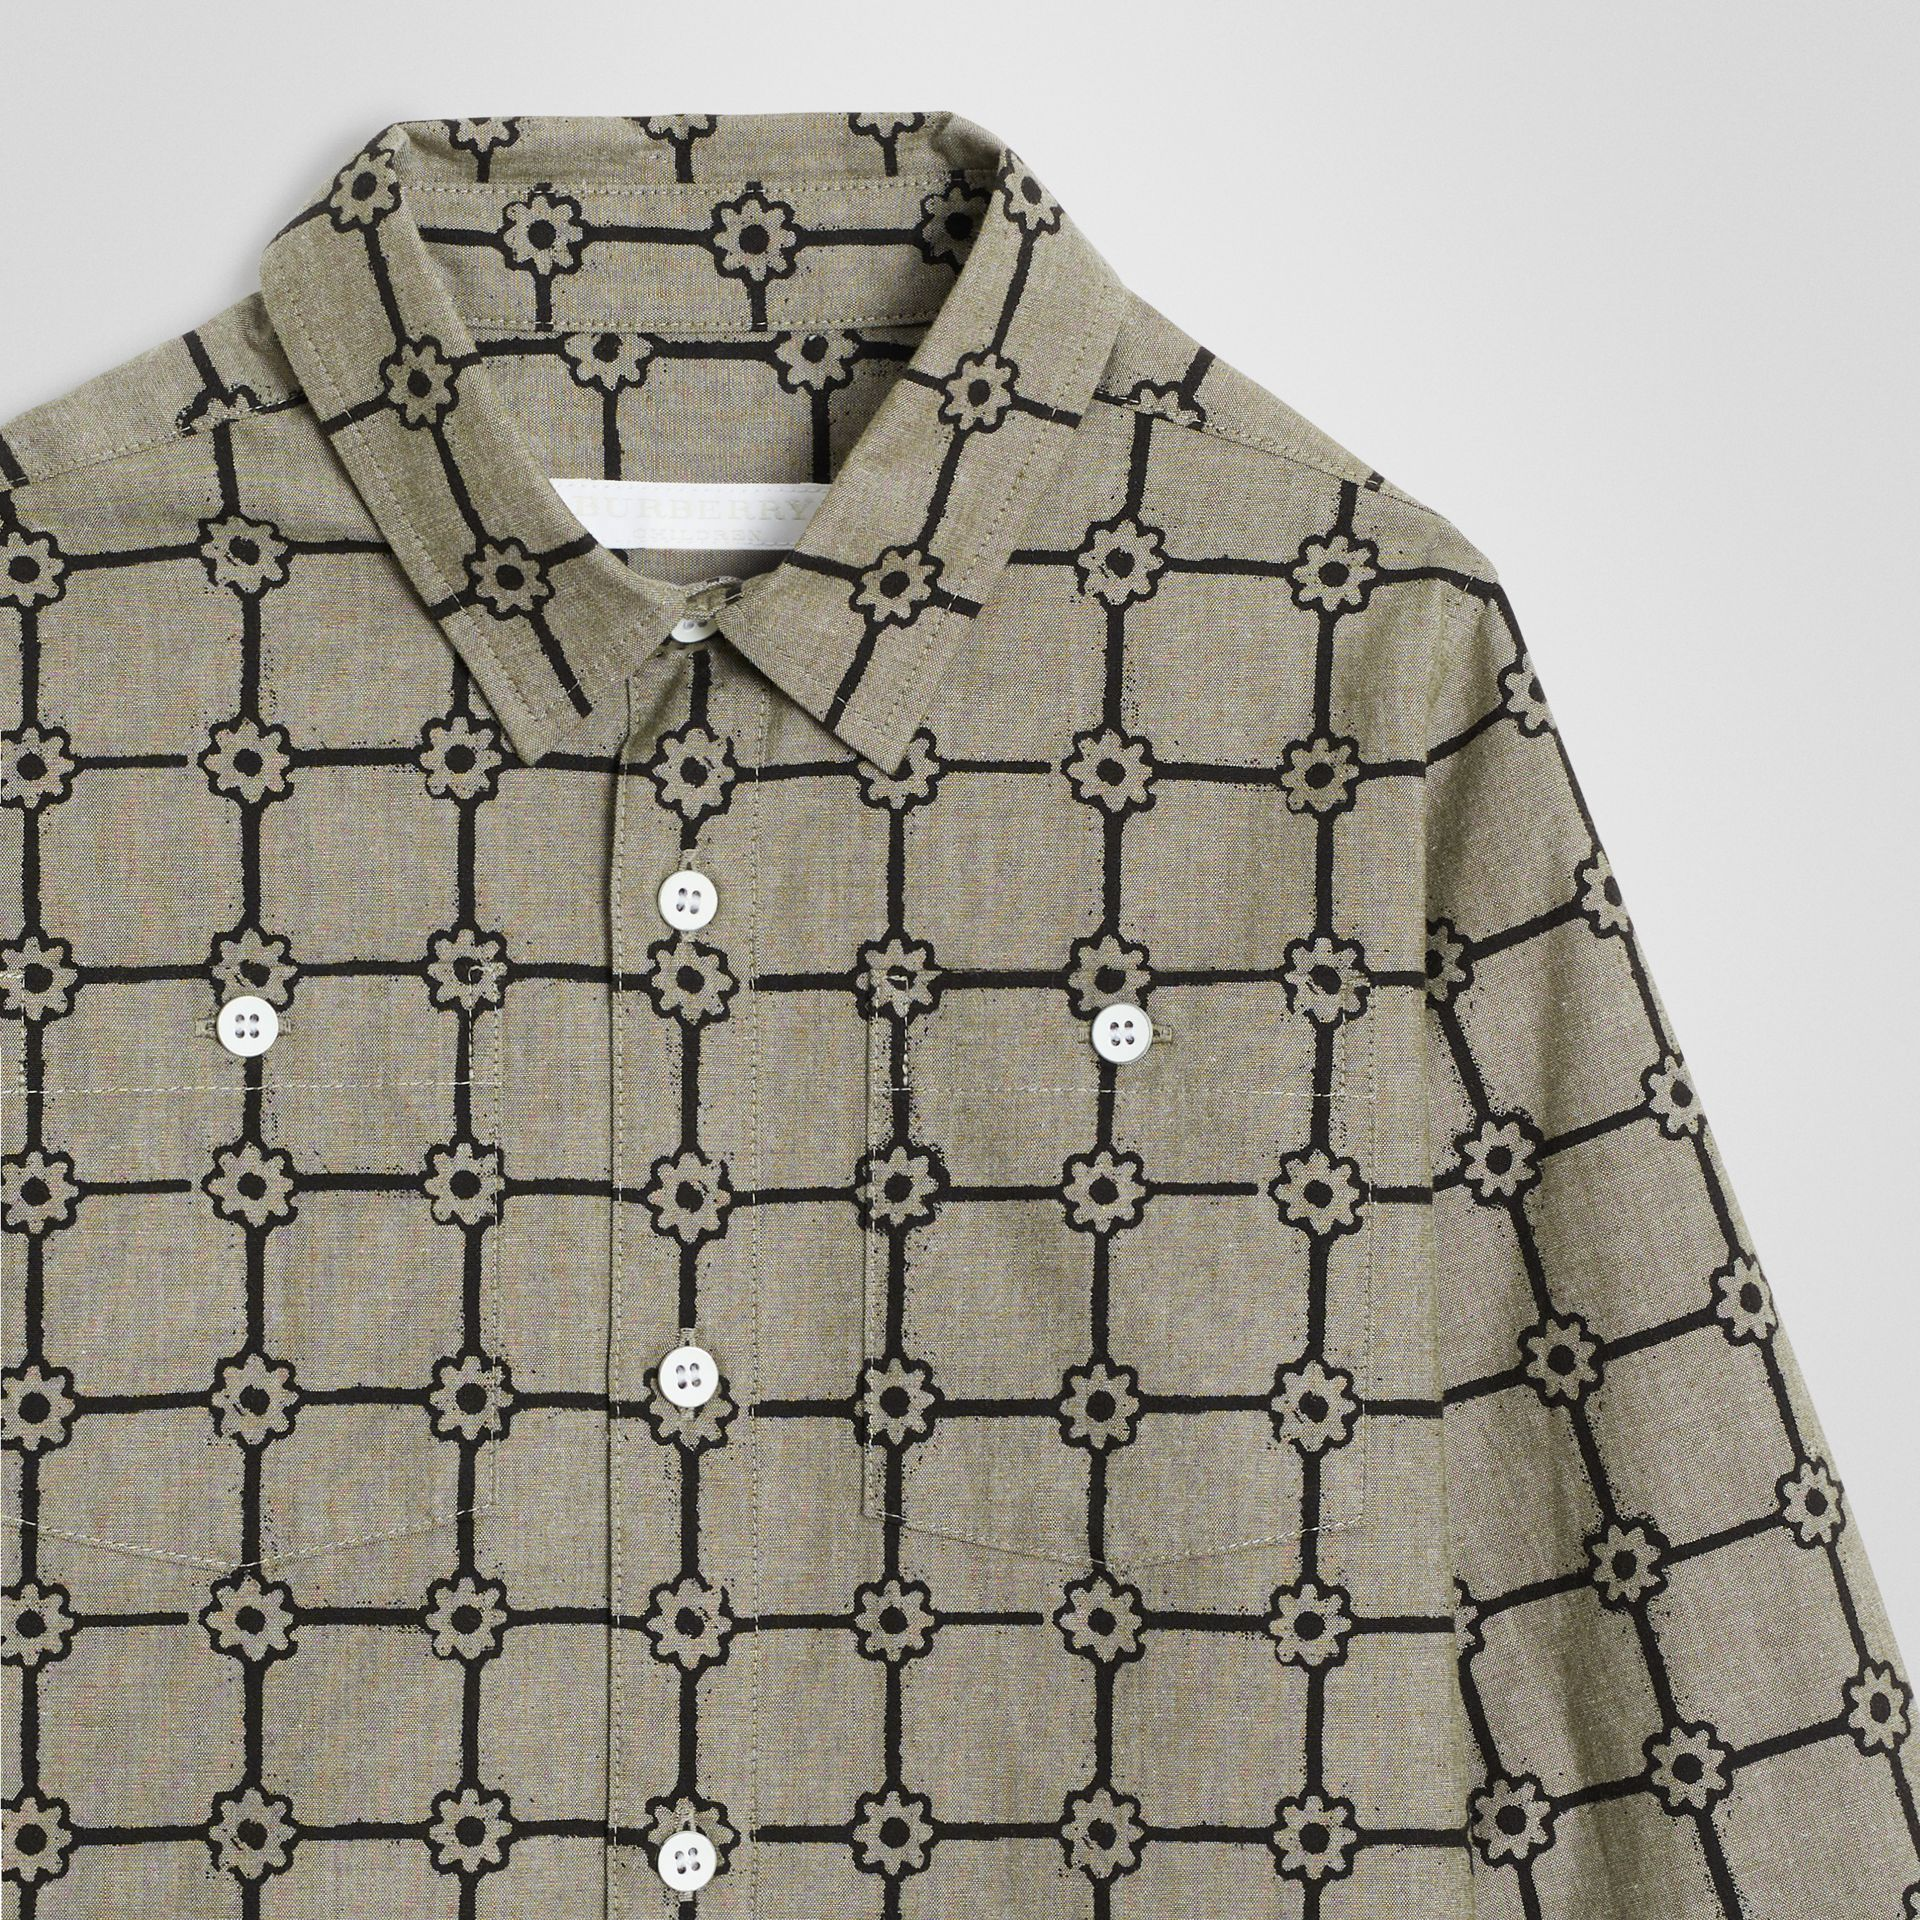 Flower Print Cotton Shirt in Khaki | Burberry Australia - gallery image 4